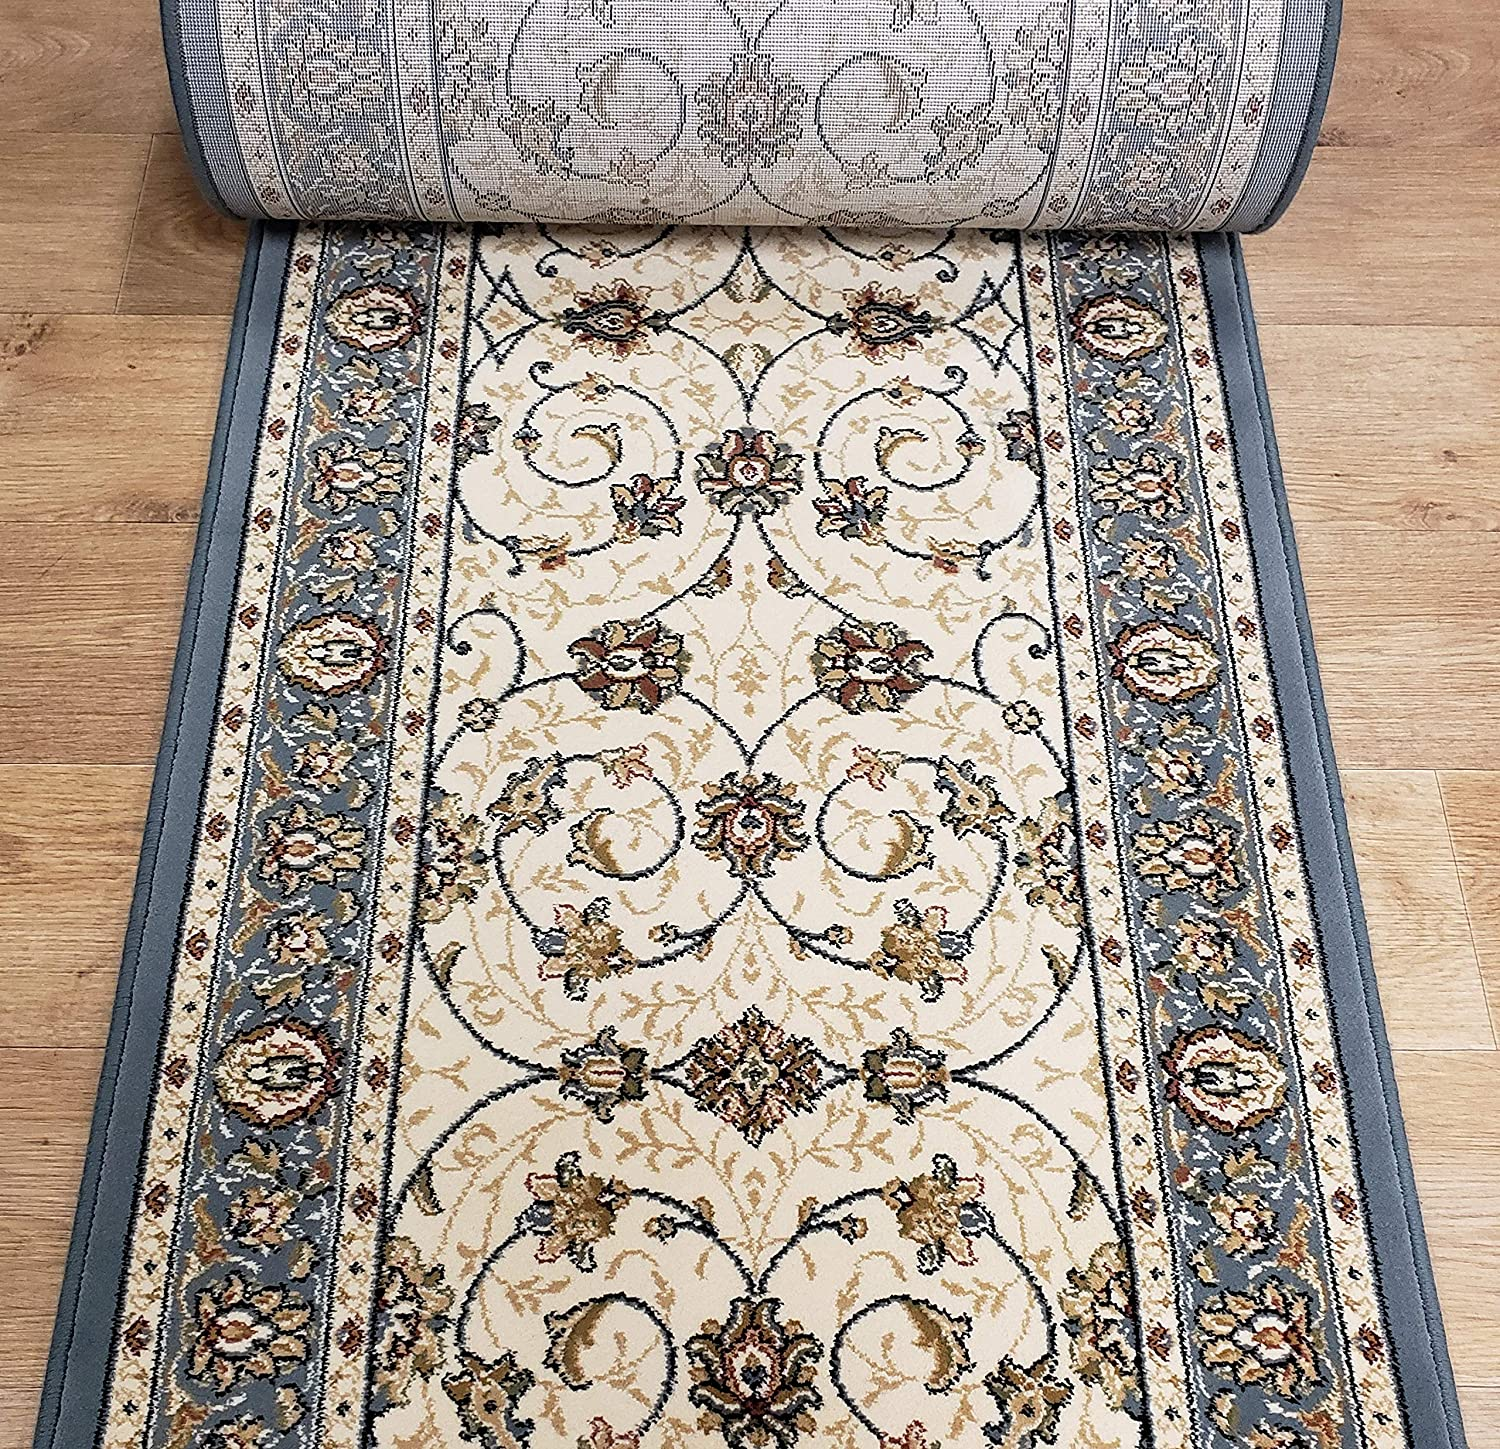 Amazon Com 180027 Rug Depot Traditional Sold By The Foot Stair Runners And Hall Runners 26 Runner By The Foot Ivory Light Blue 1 Million Points 100 Polypropylene Custom Stair Runner Home Kitchen